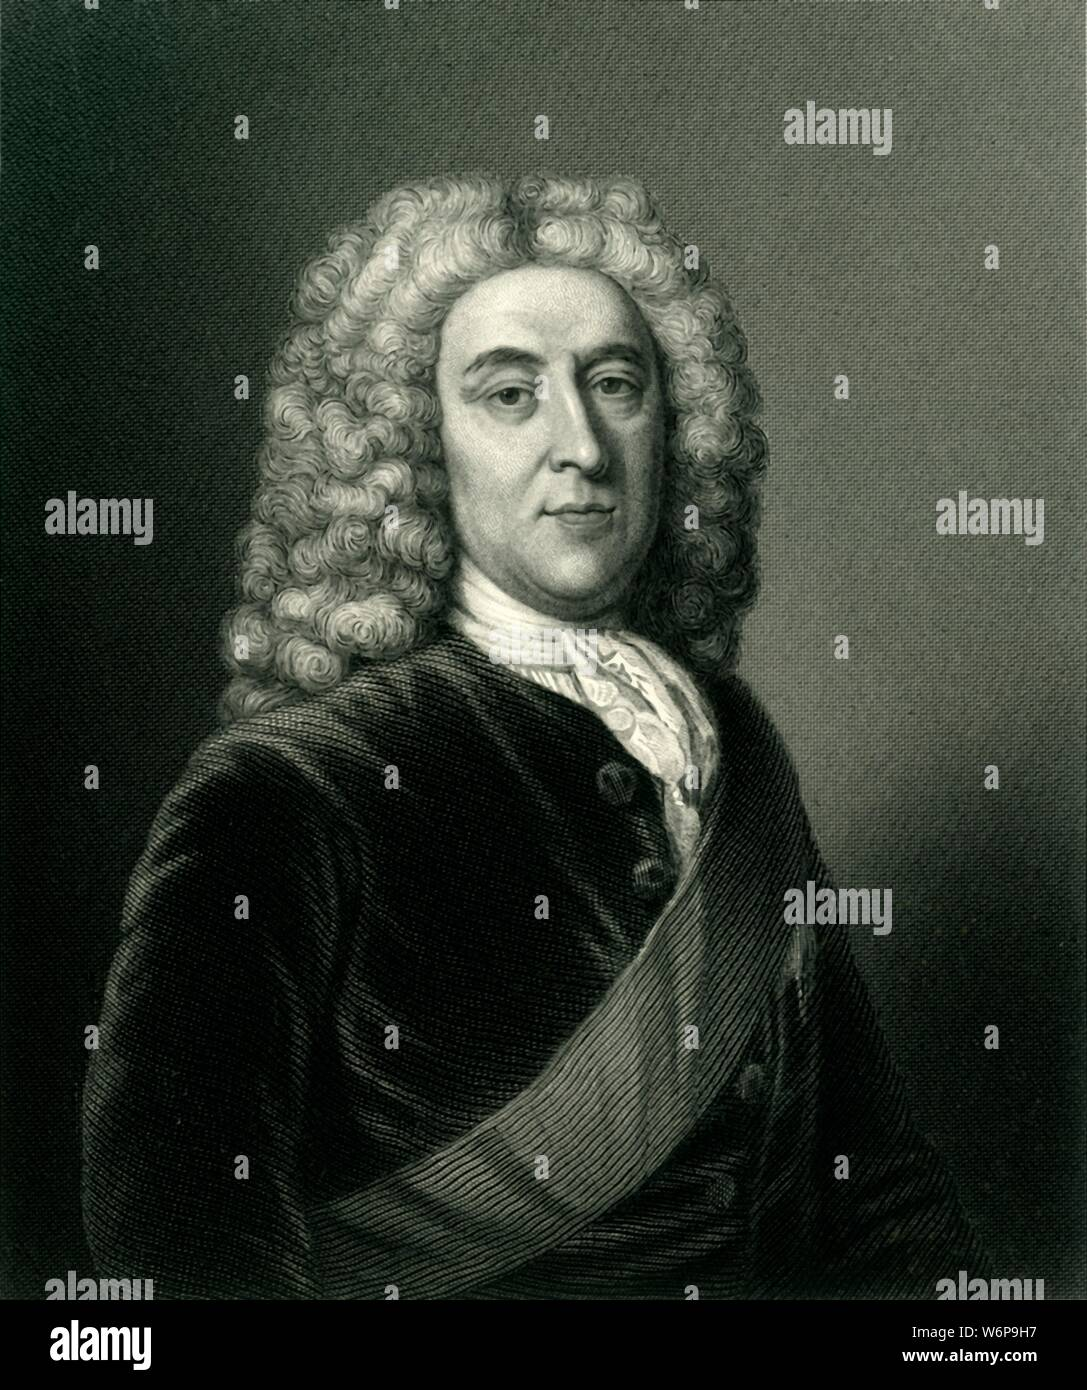 """'Thomas Holles Pelham, Duke of Newcastle, K.G.', c1884. Thomas Pelham-Holles (1693-1768), British Whig, educated at Westminster School and Clare College, Cambridge. Statesman, First Lord of the Treasury, protege of Sir Robert Walpole and Prime Minister during reigns of George II and George III. From """"Leaders of the Senate: A Biographical History of the Rise and Development of the British Constitution, Vol. I."""", by Alexander Charles Ewald, F.S.A. [William Mackenzie, London, Edinburgh & Berlin] Stock Photo"""